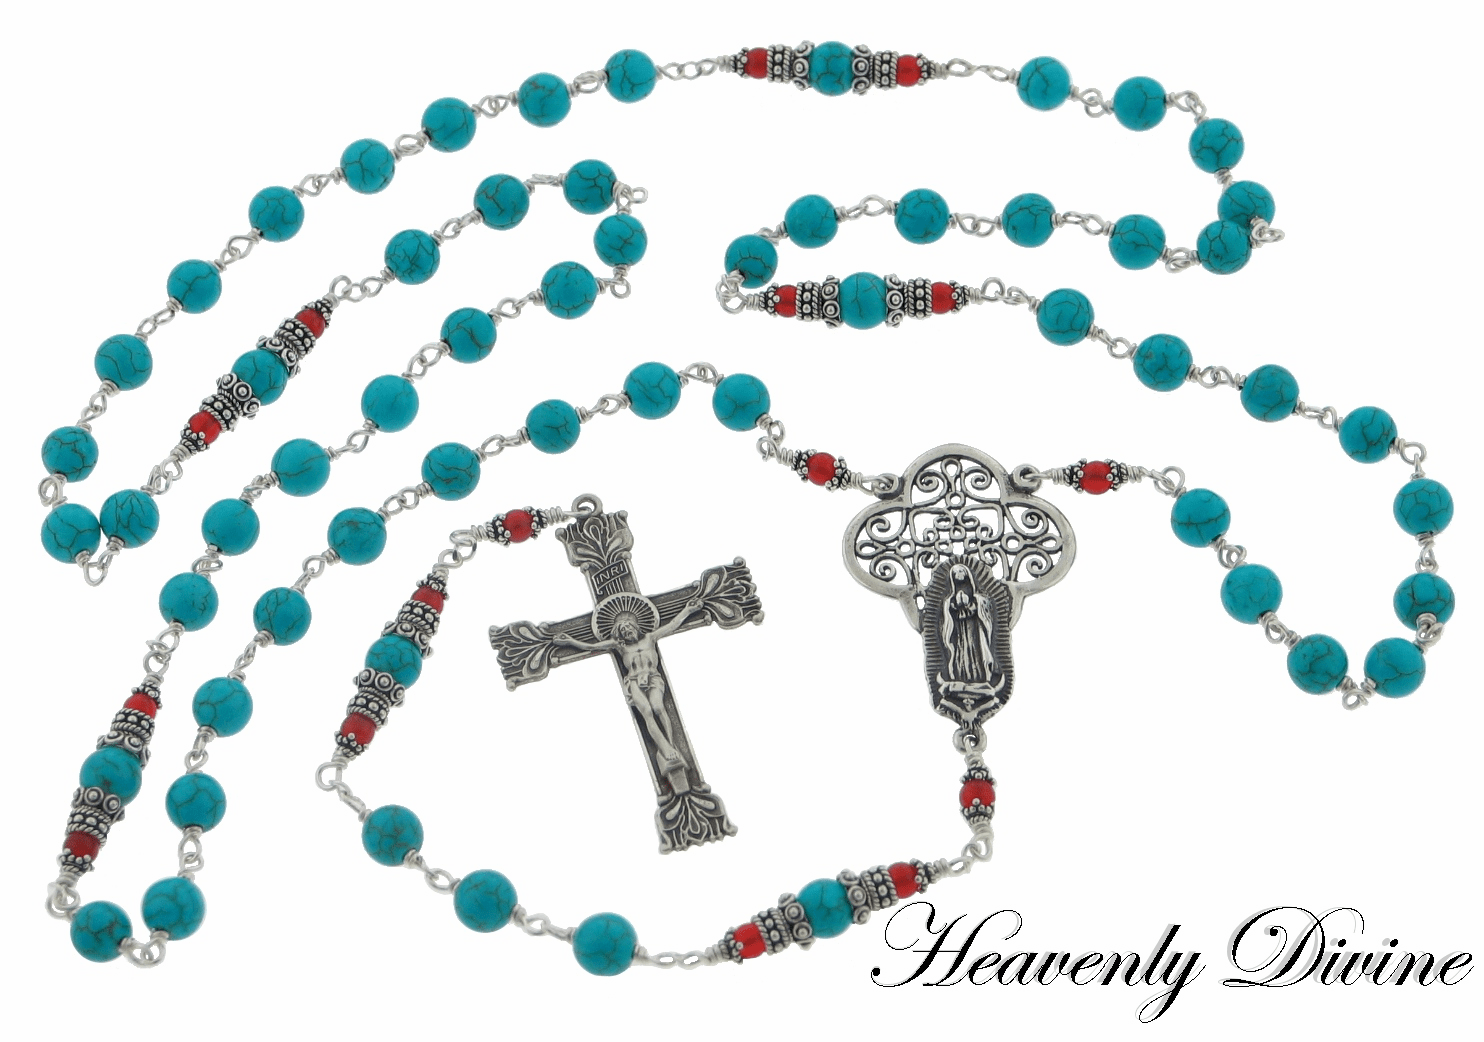 Heavenly Divine Gemstone Rosaries